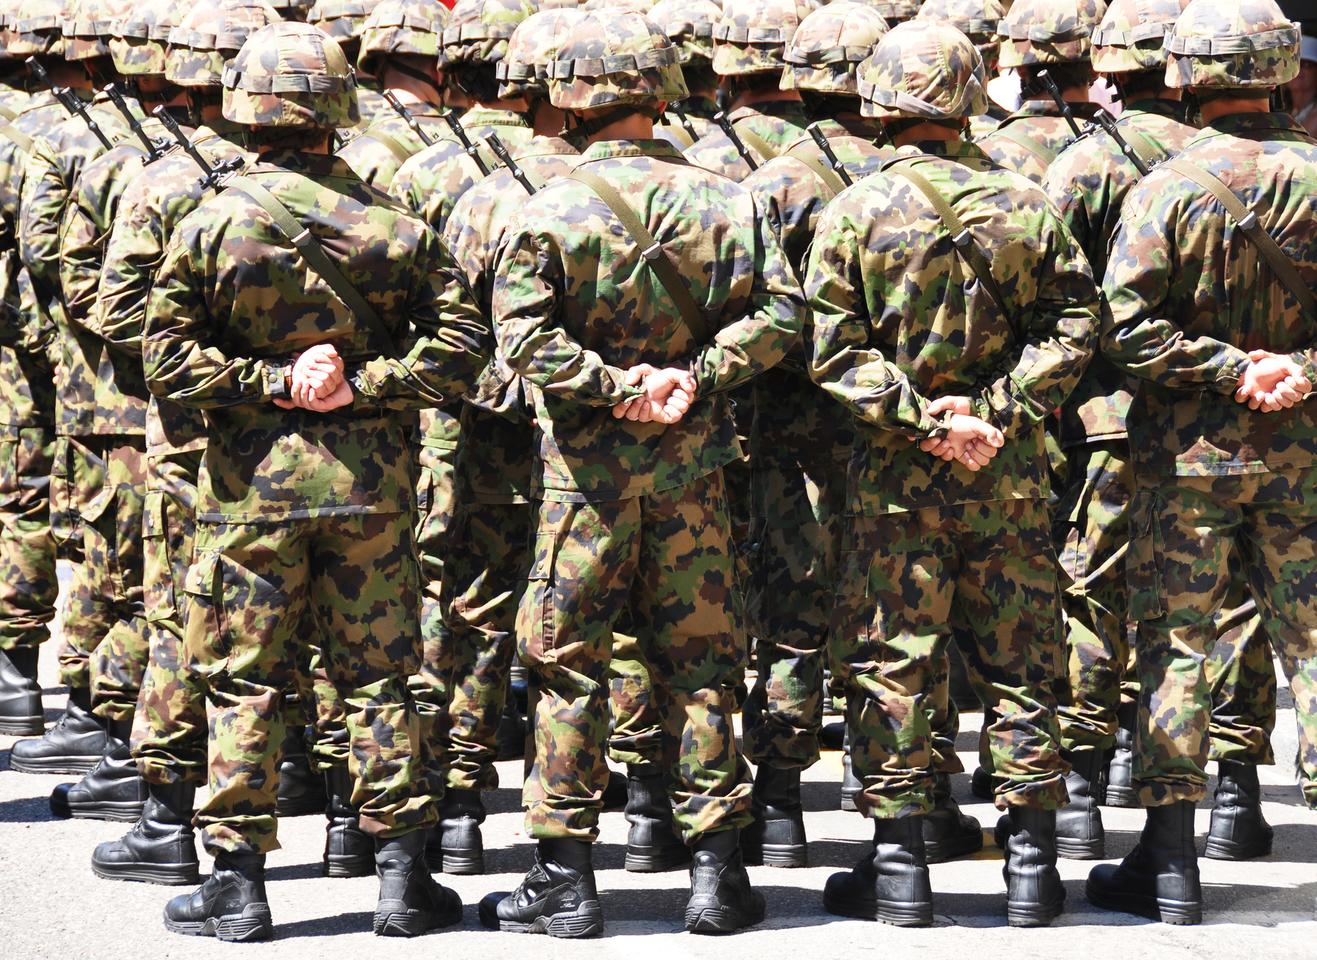 US Army Soldiers looks set to get new uniforms (not pictured) made of a flame-retardant, insect-repellent fabric